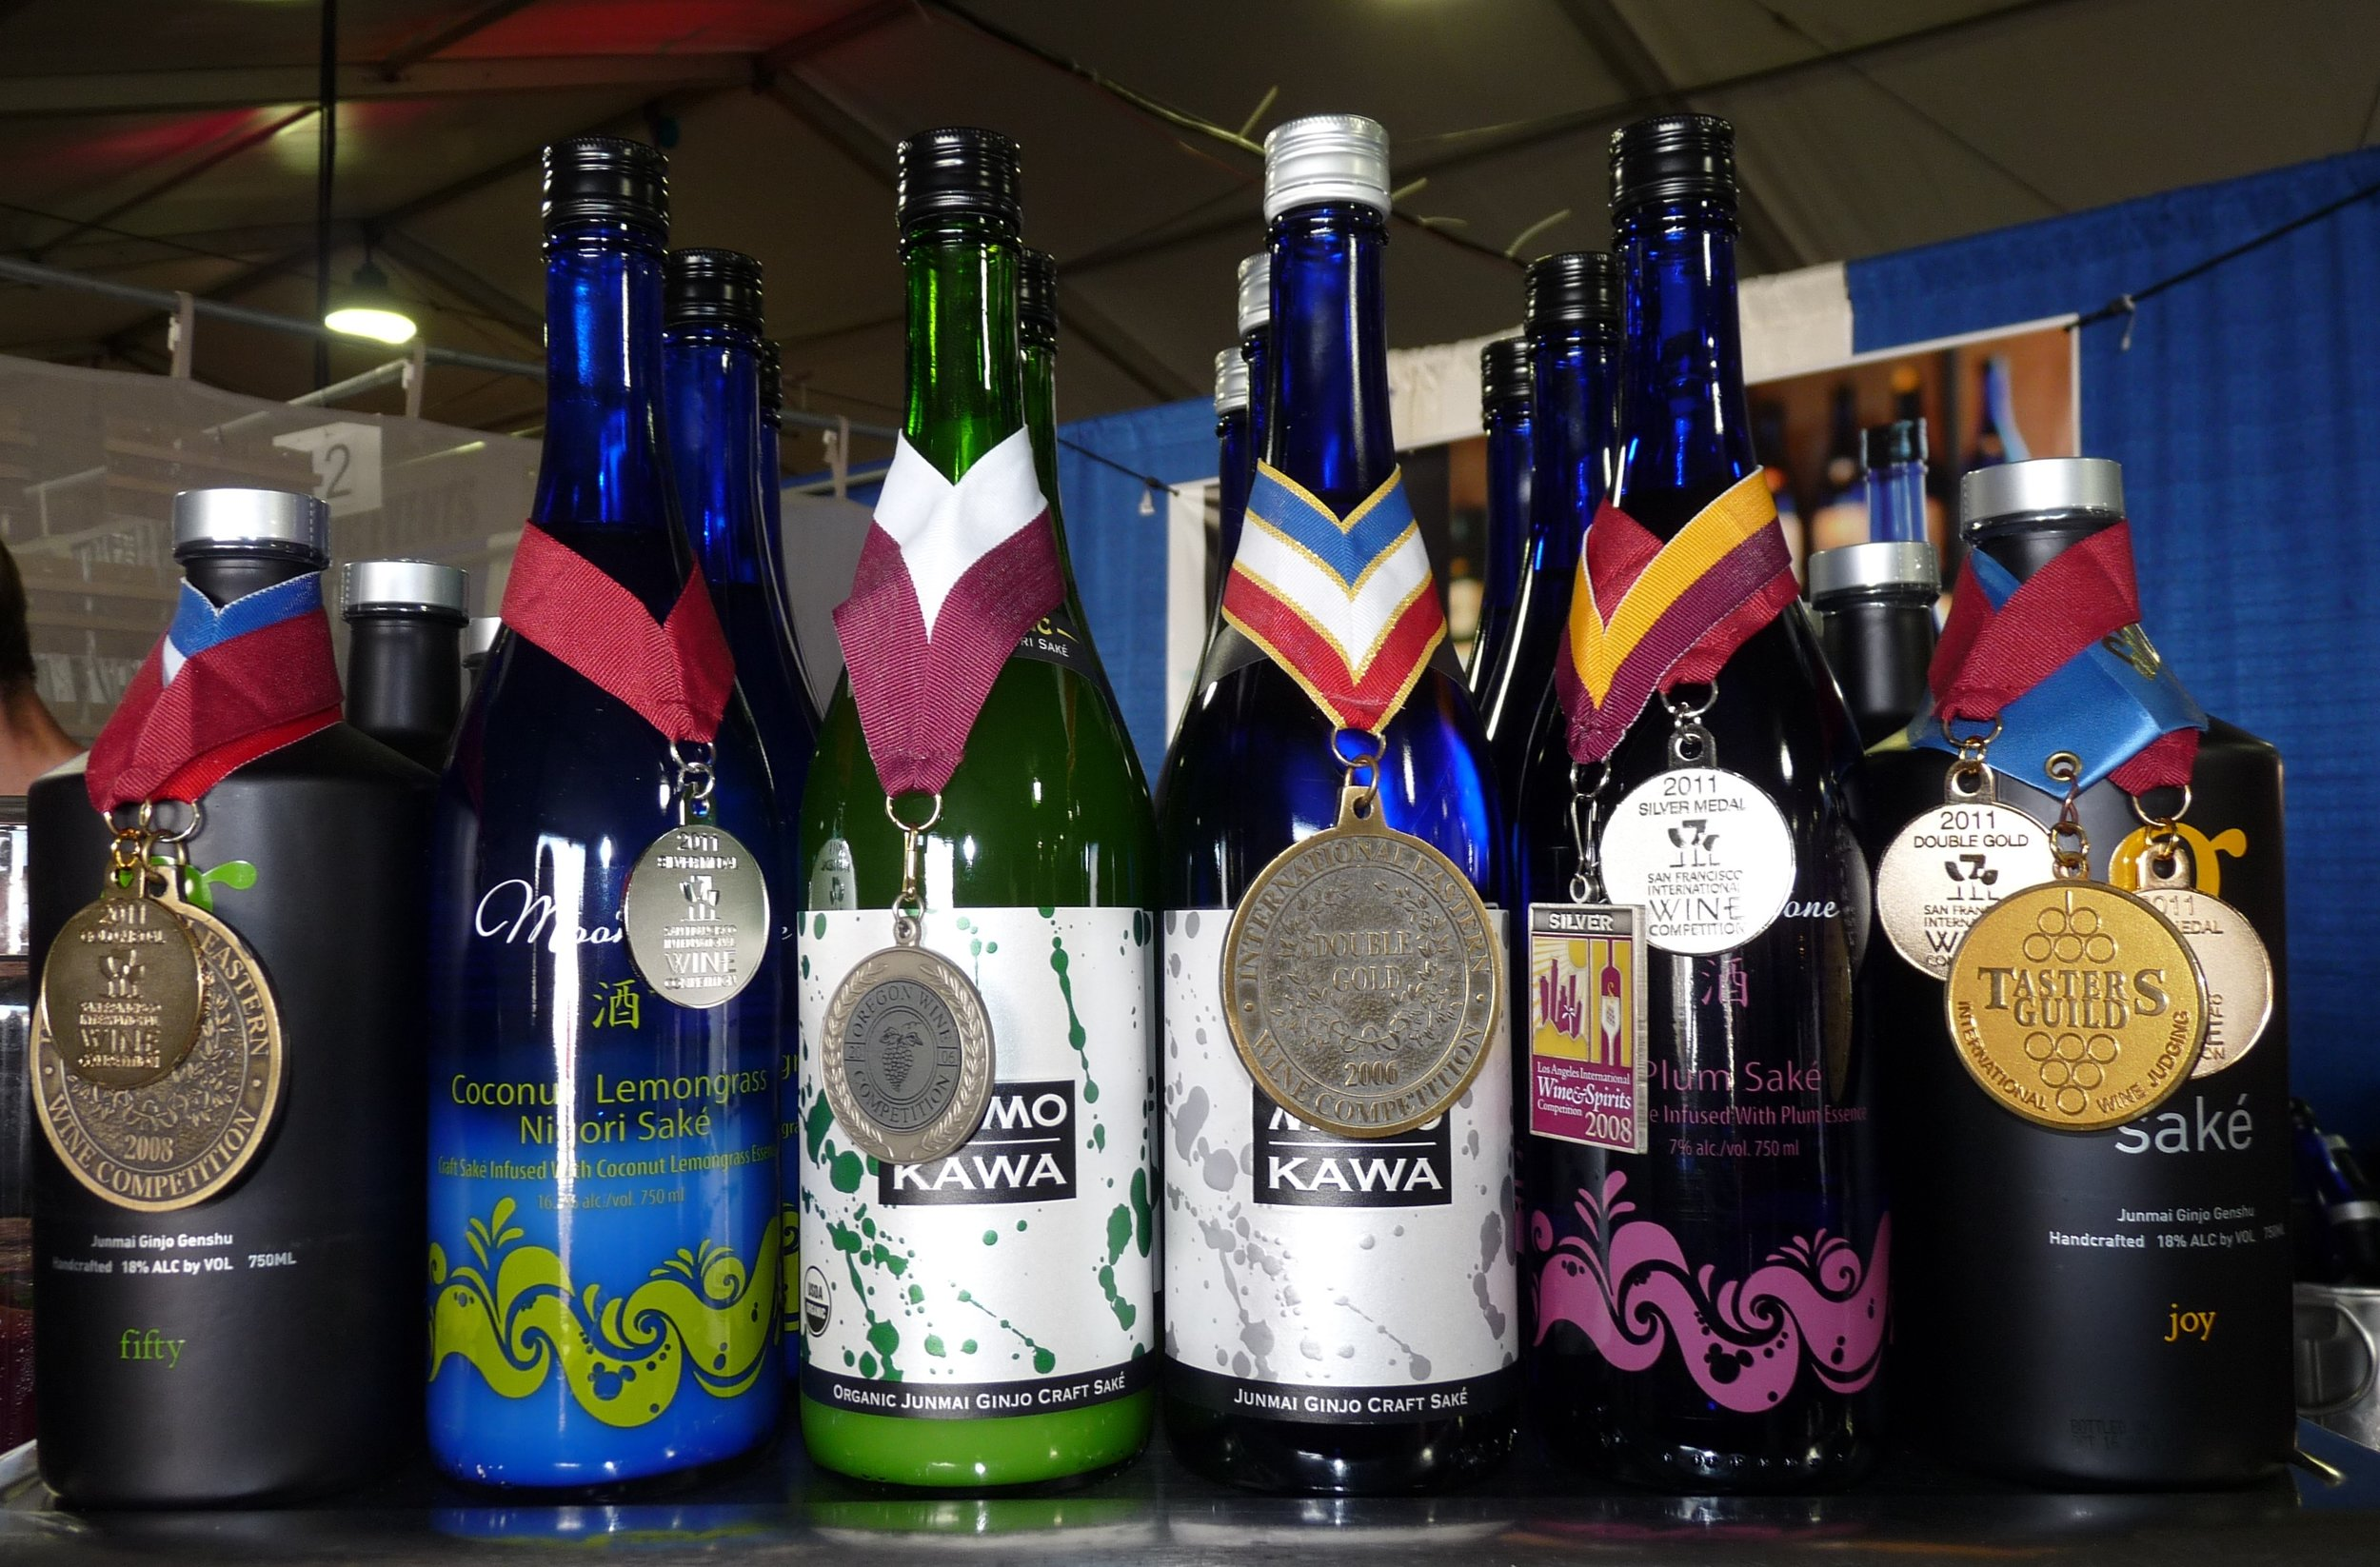 Oregon Craft Saké's award-winning lineup including their G Saké 50